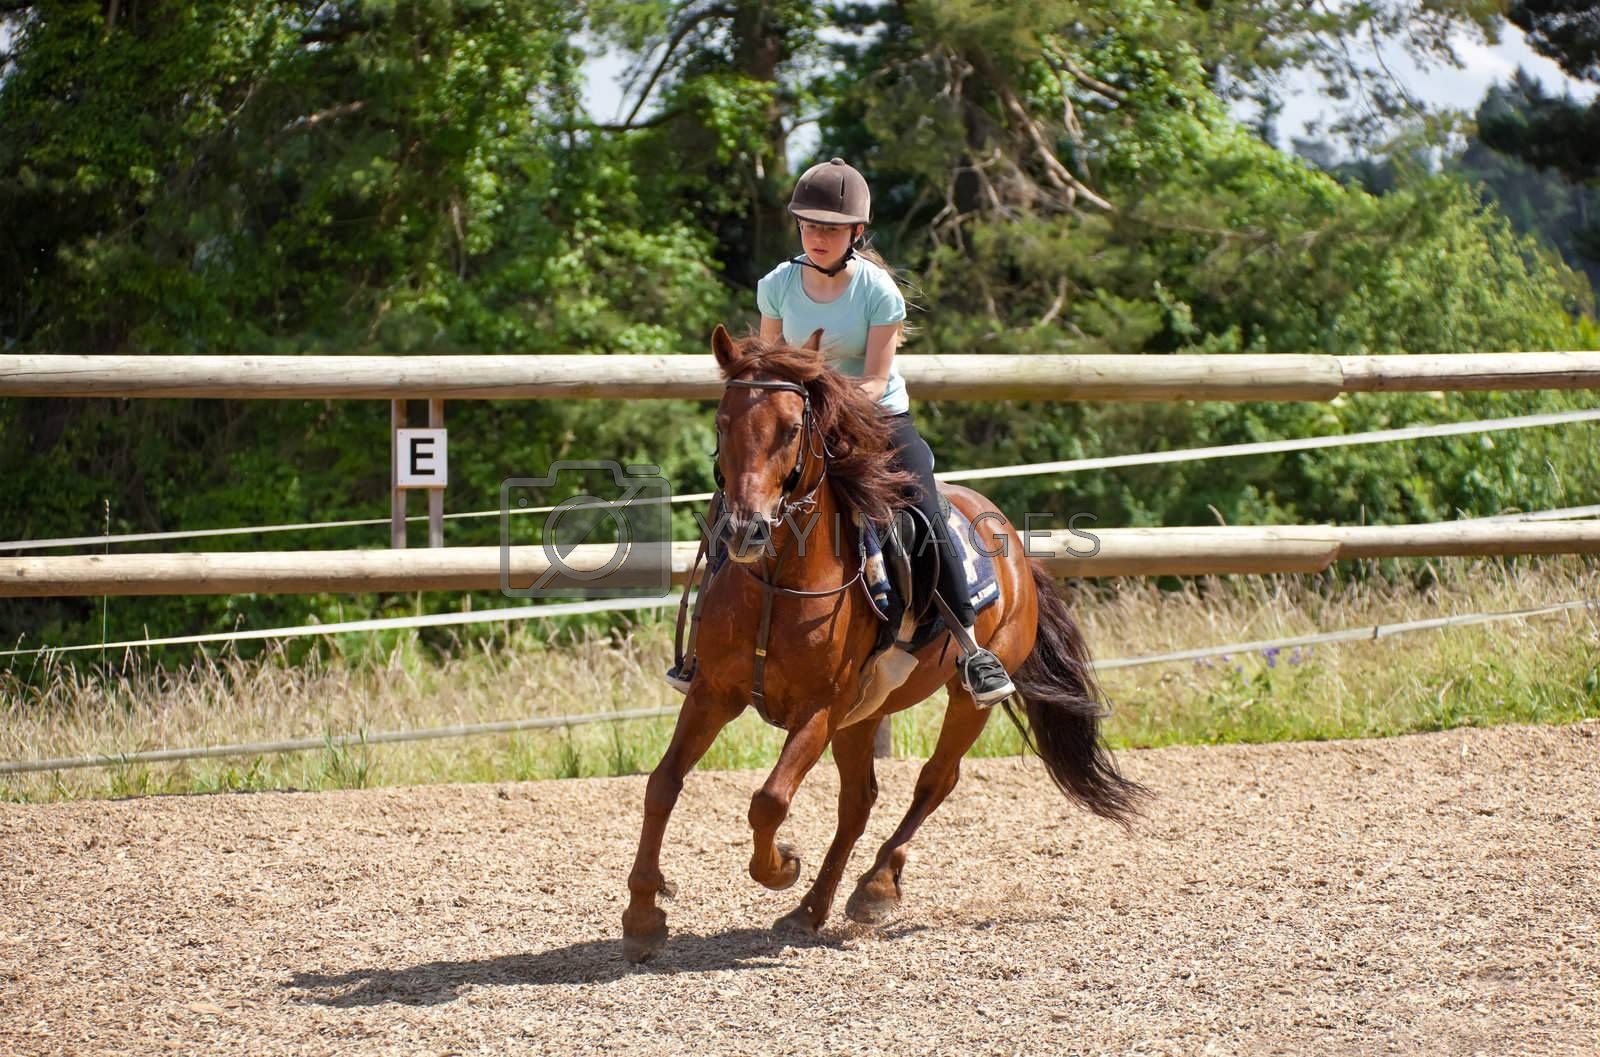 This image shows a portrait from a riding girl